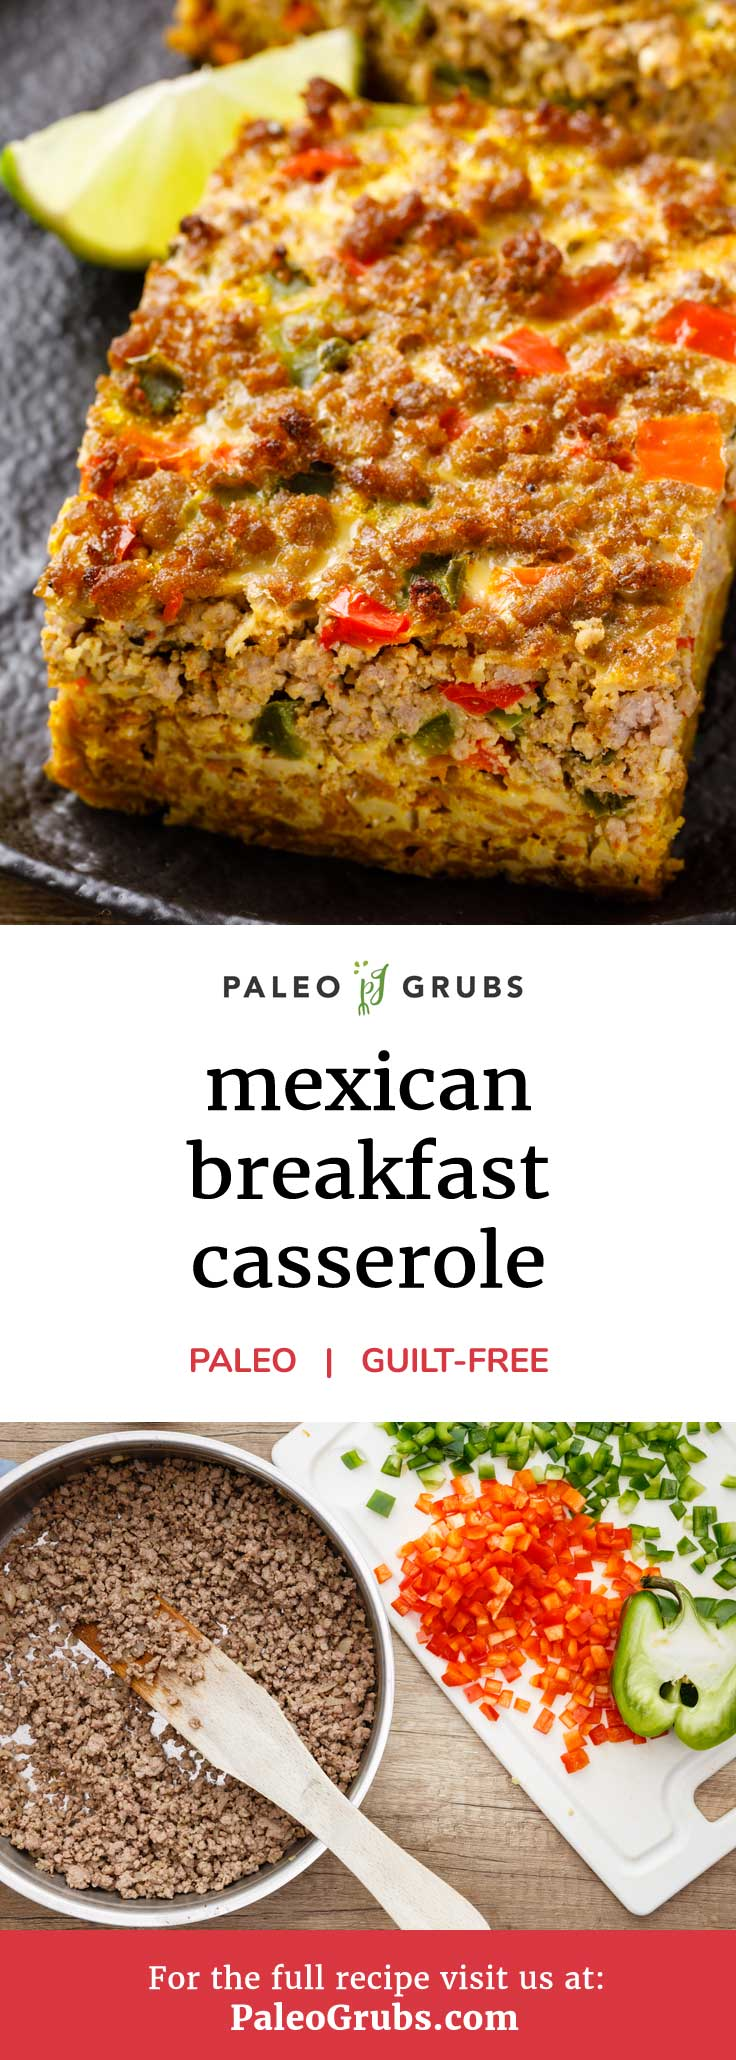 If you love breakfast casseroles and if you love Mexican cuisine, then have I ever got a treat for you with this recipe for a Mexican breakfast casserole. It's made entirely from scratch with deliciously spicy paleo friendly ingredients that produce a casserole that is absolutely bursting with flavor.